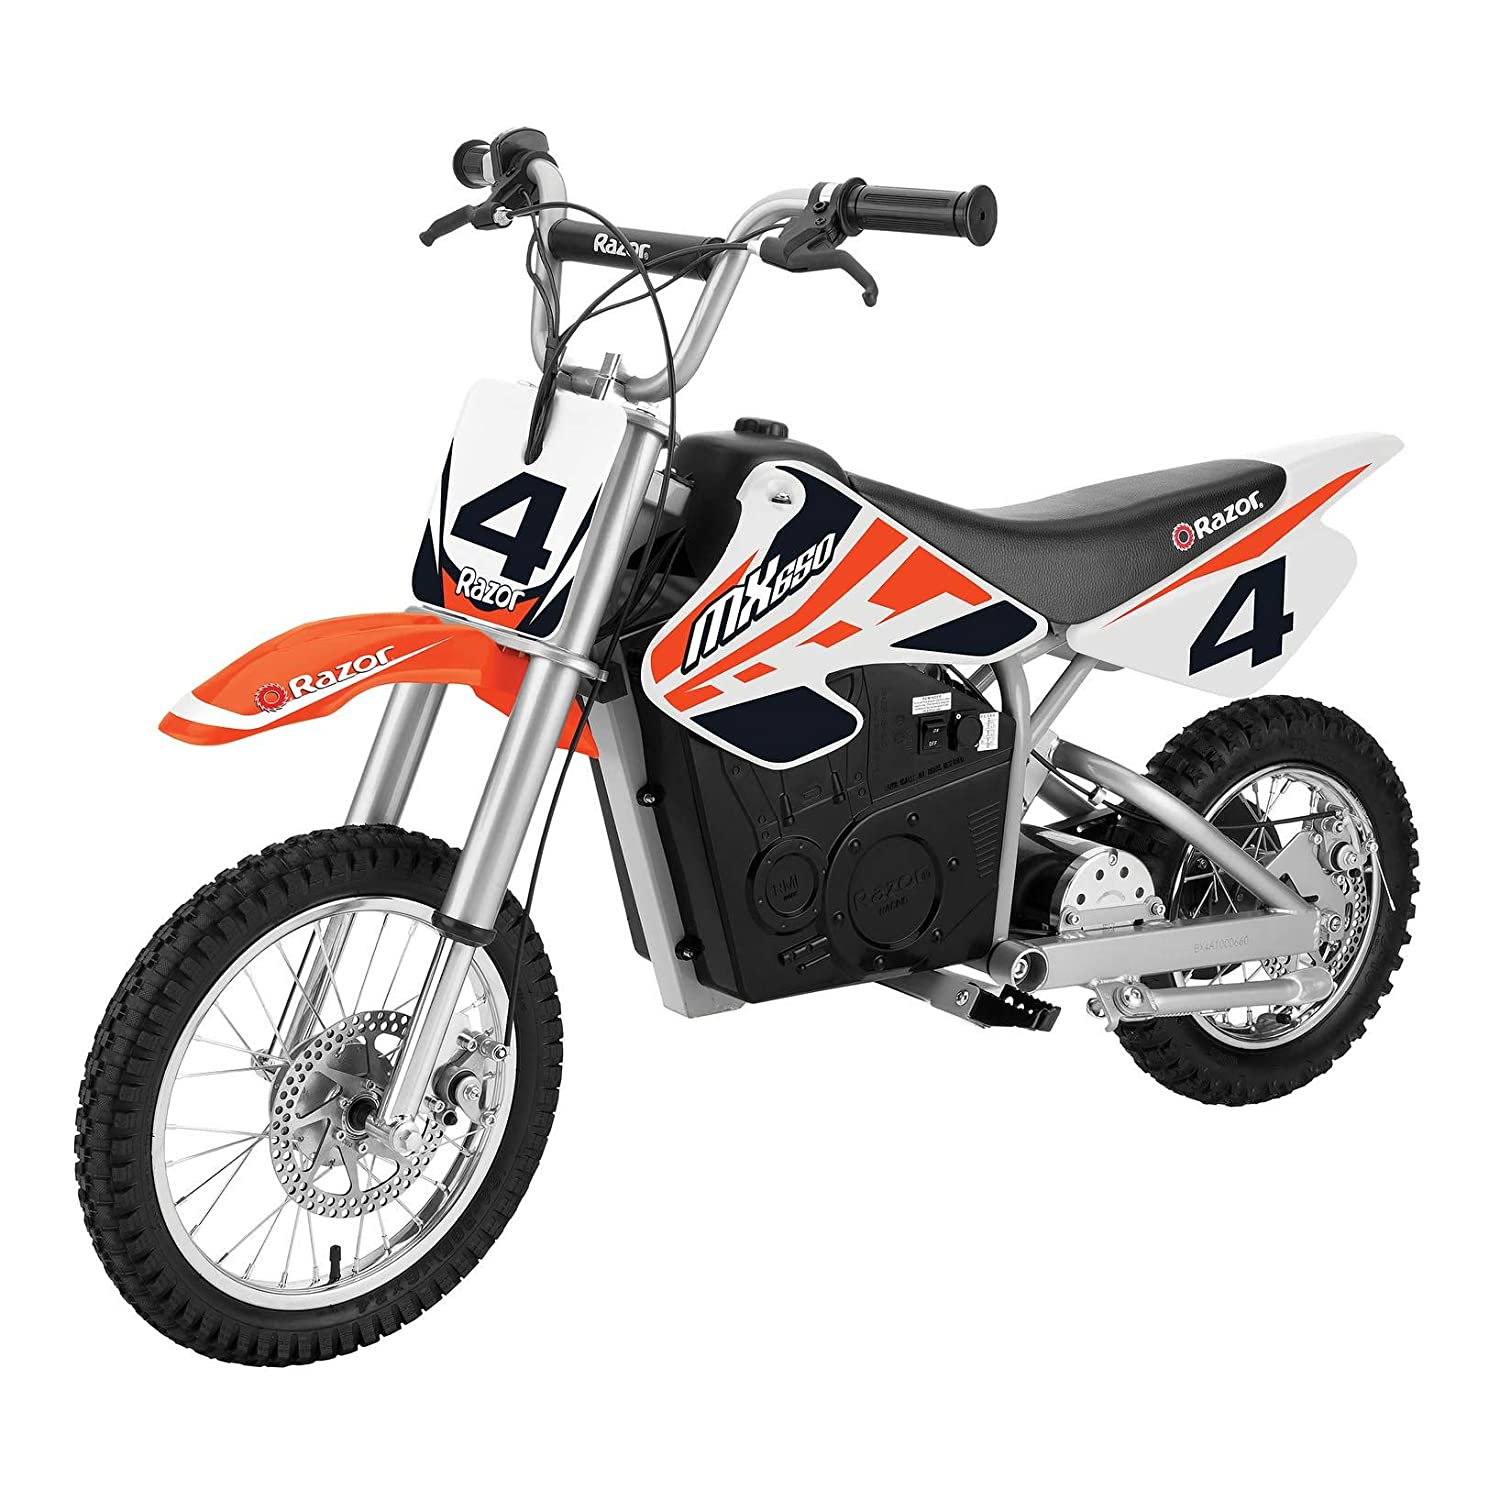 Razor MX650 17 MPH Steel Electric Dirt Rocket Motor Bike for Kids